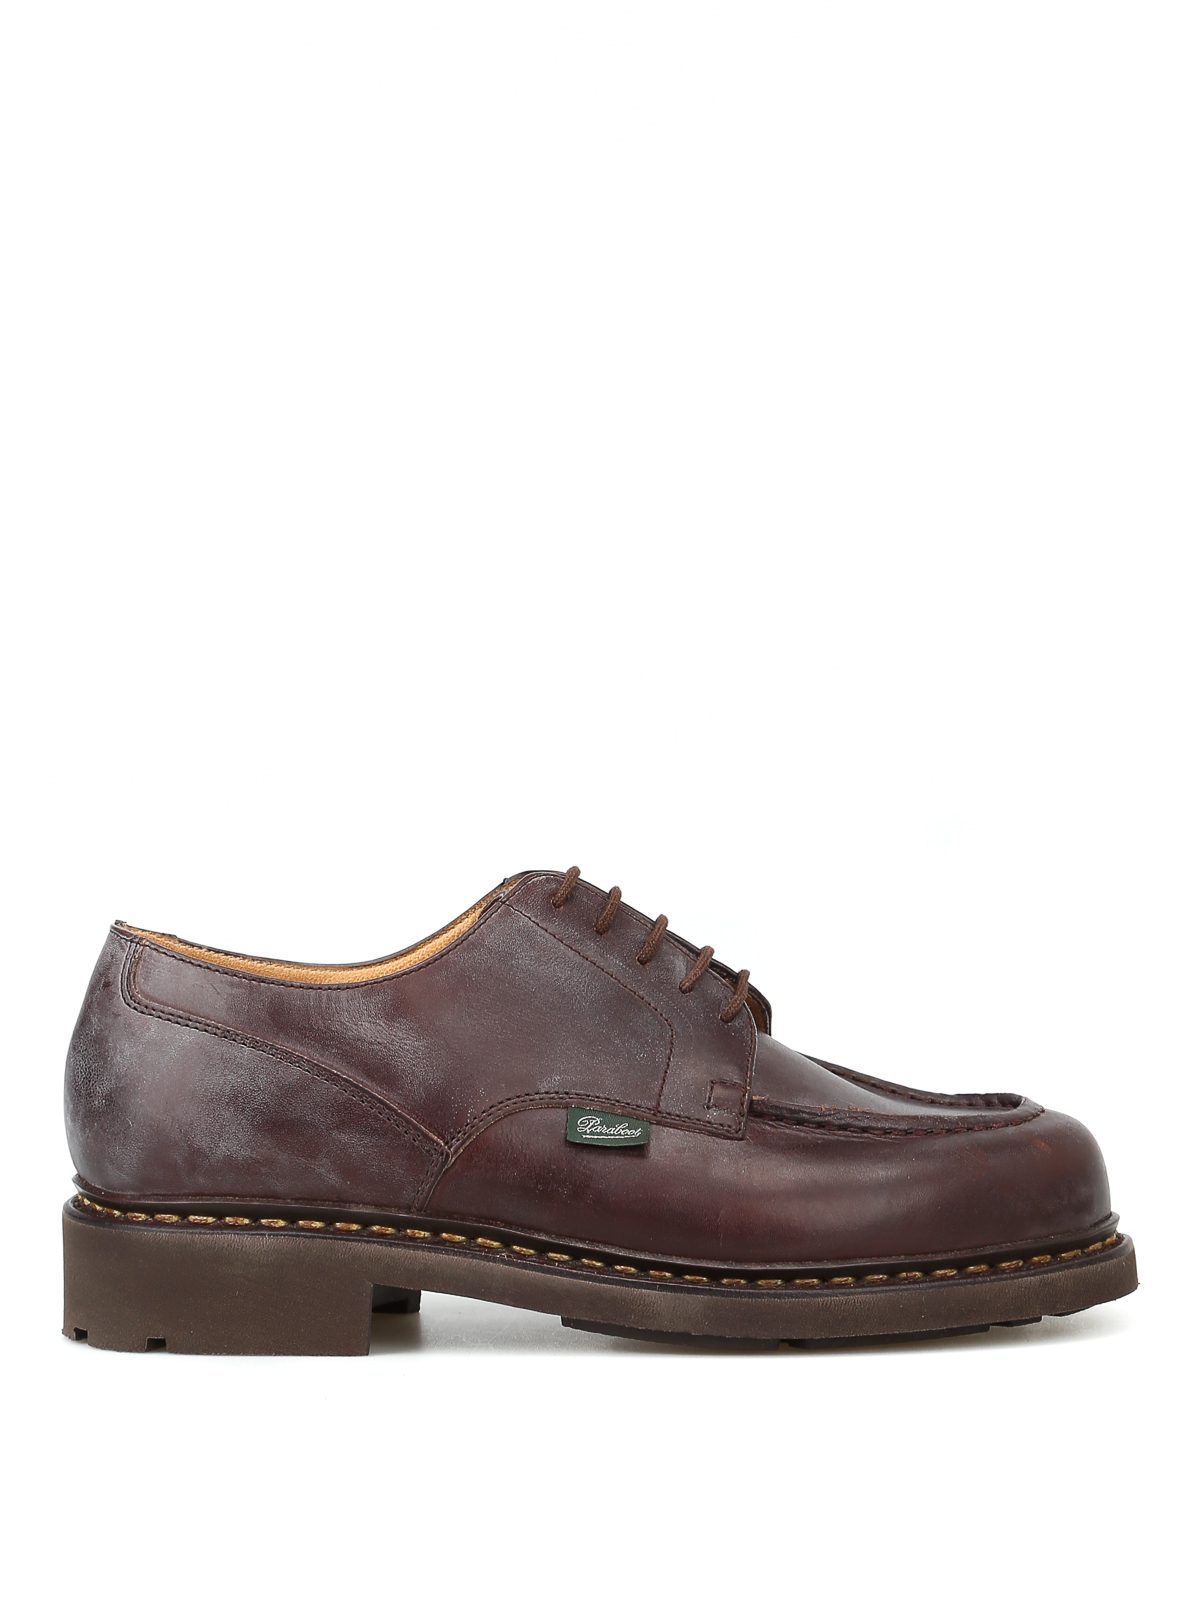 Paraboot  CHAMBORD  VINTAGE LEATHER LACE-UP SHOES